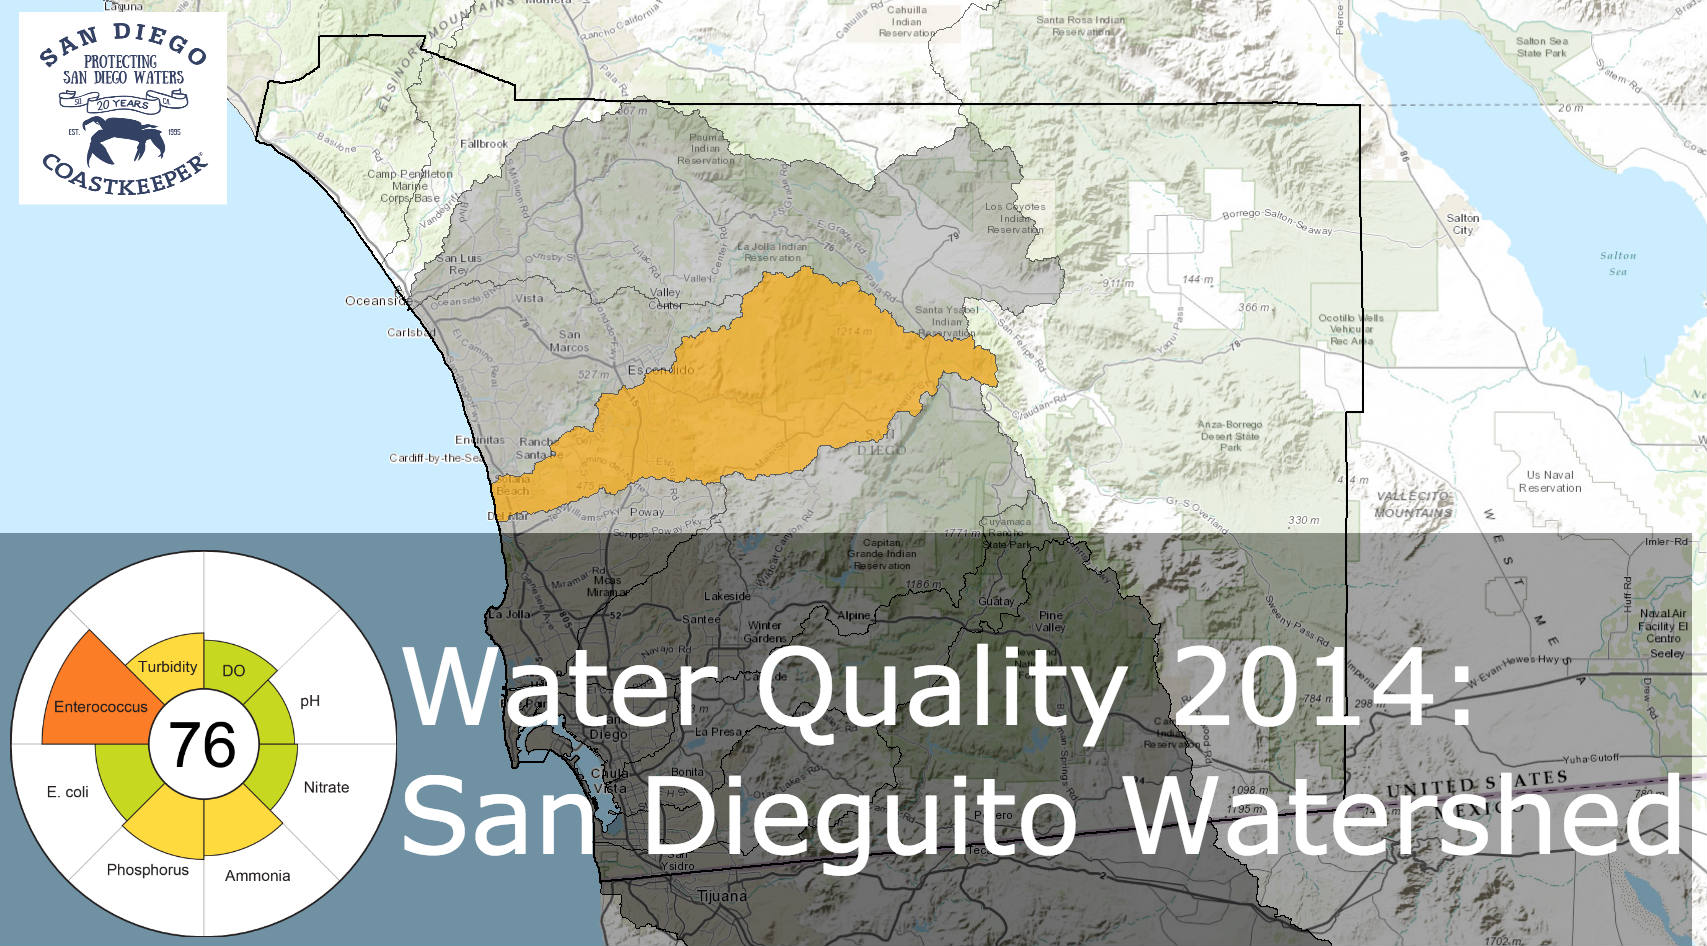 SanDieguito water quality 2014